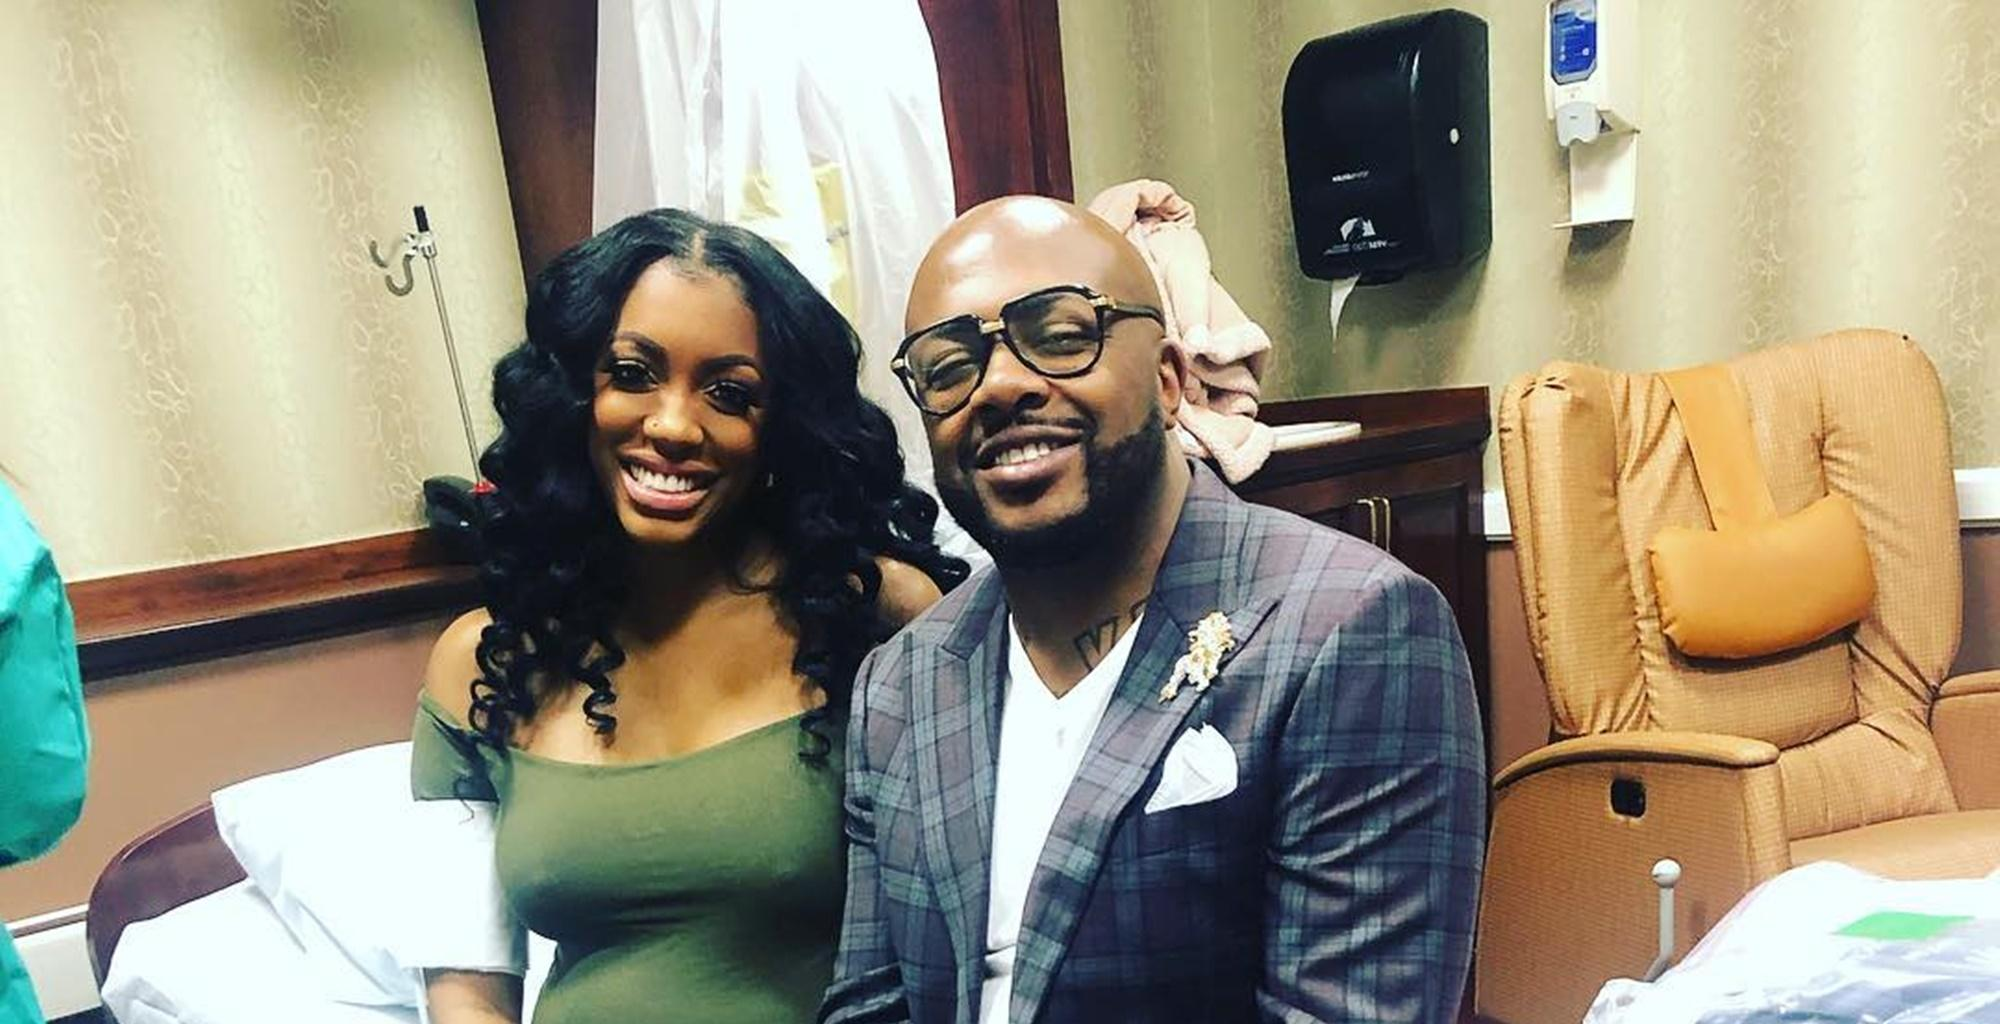 Porsha Williams Is Being Criticized For Showing Too Much In Photos Announcing The Birth Of Her Baby Girl, Pilar Jhena, With Dennis McKinley